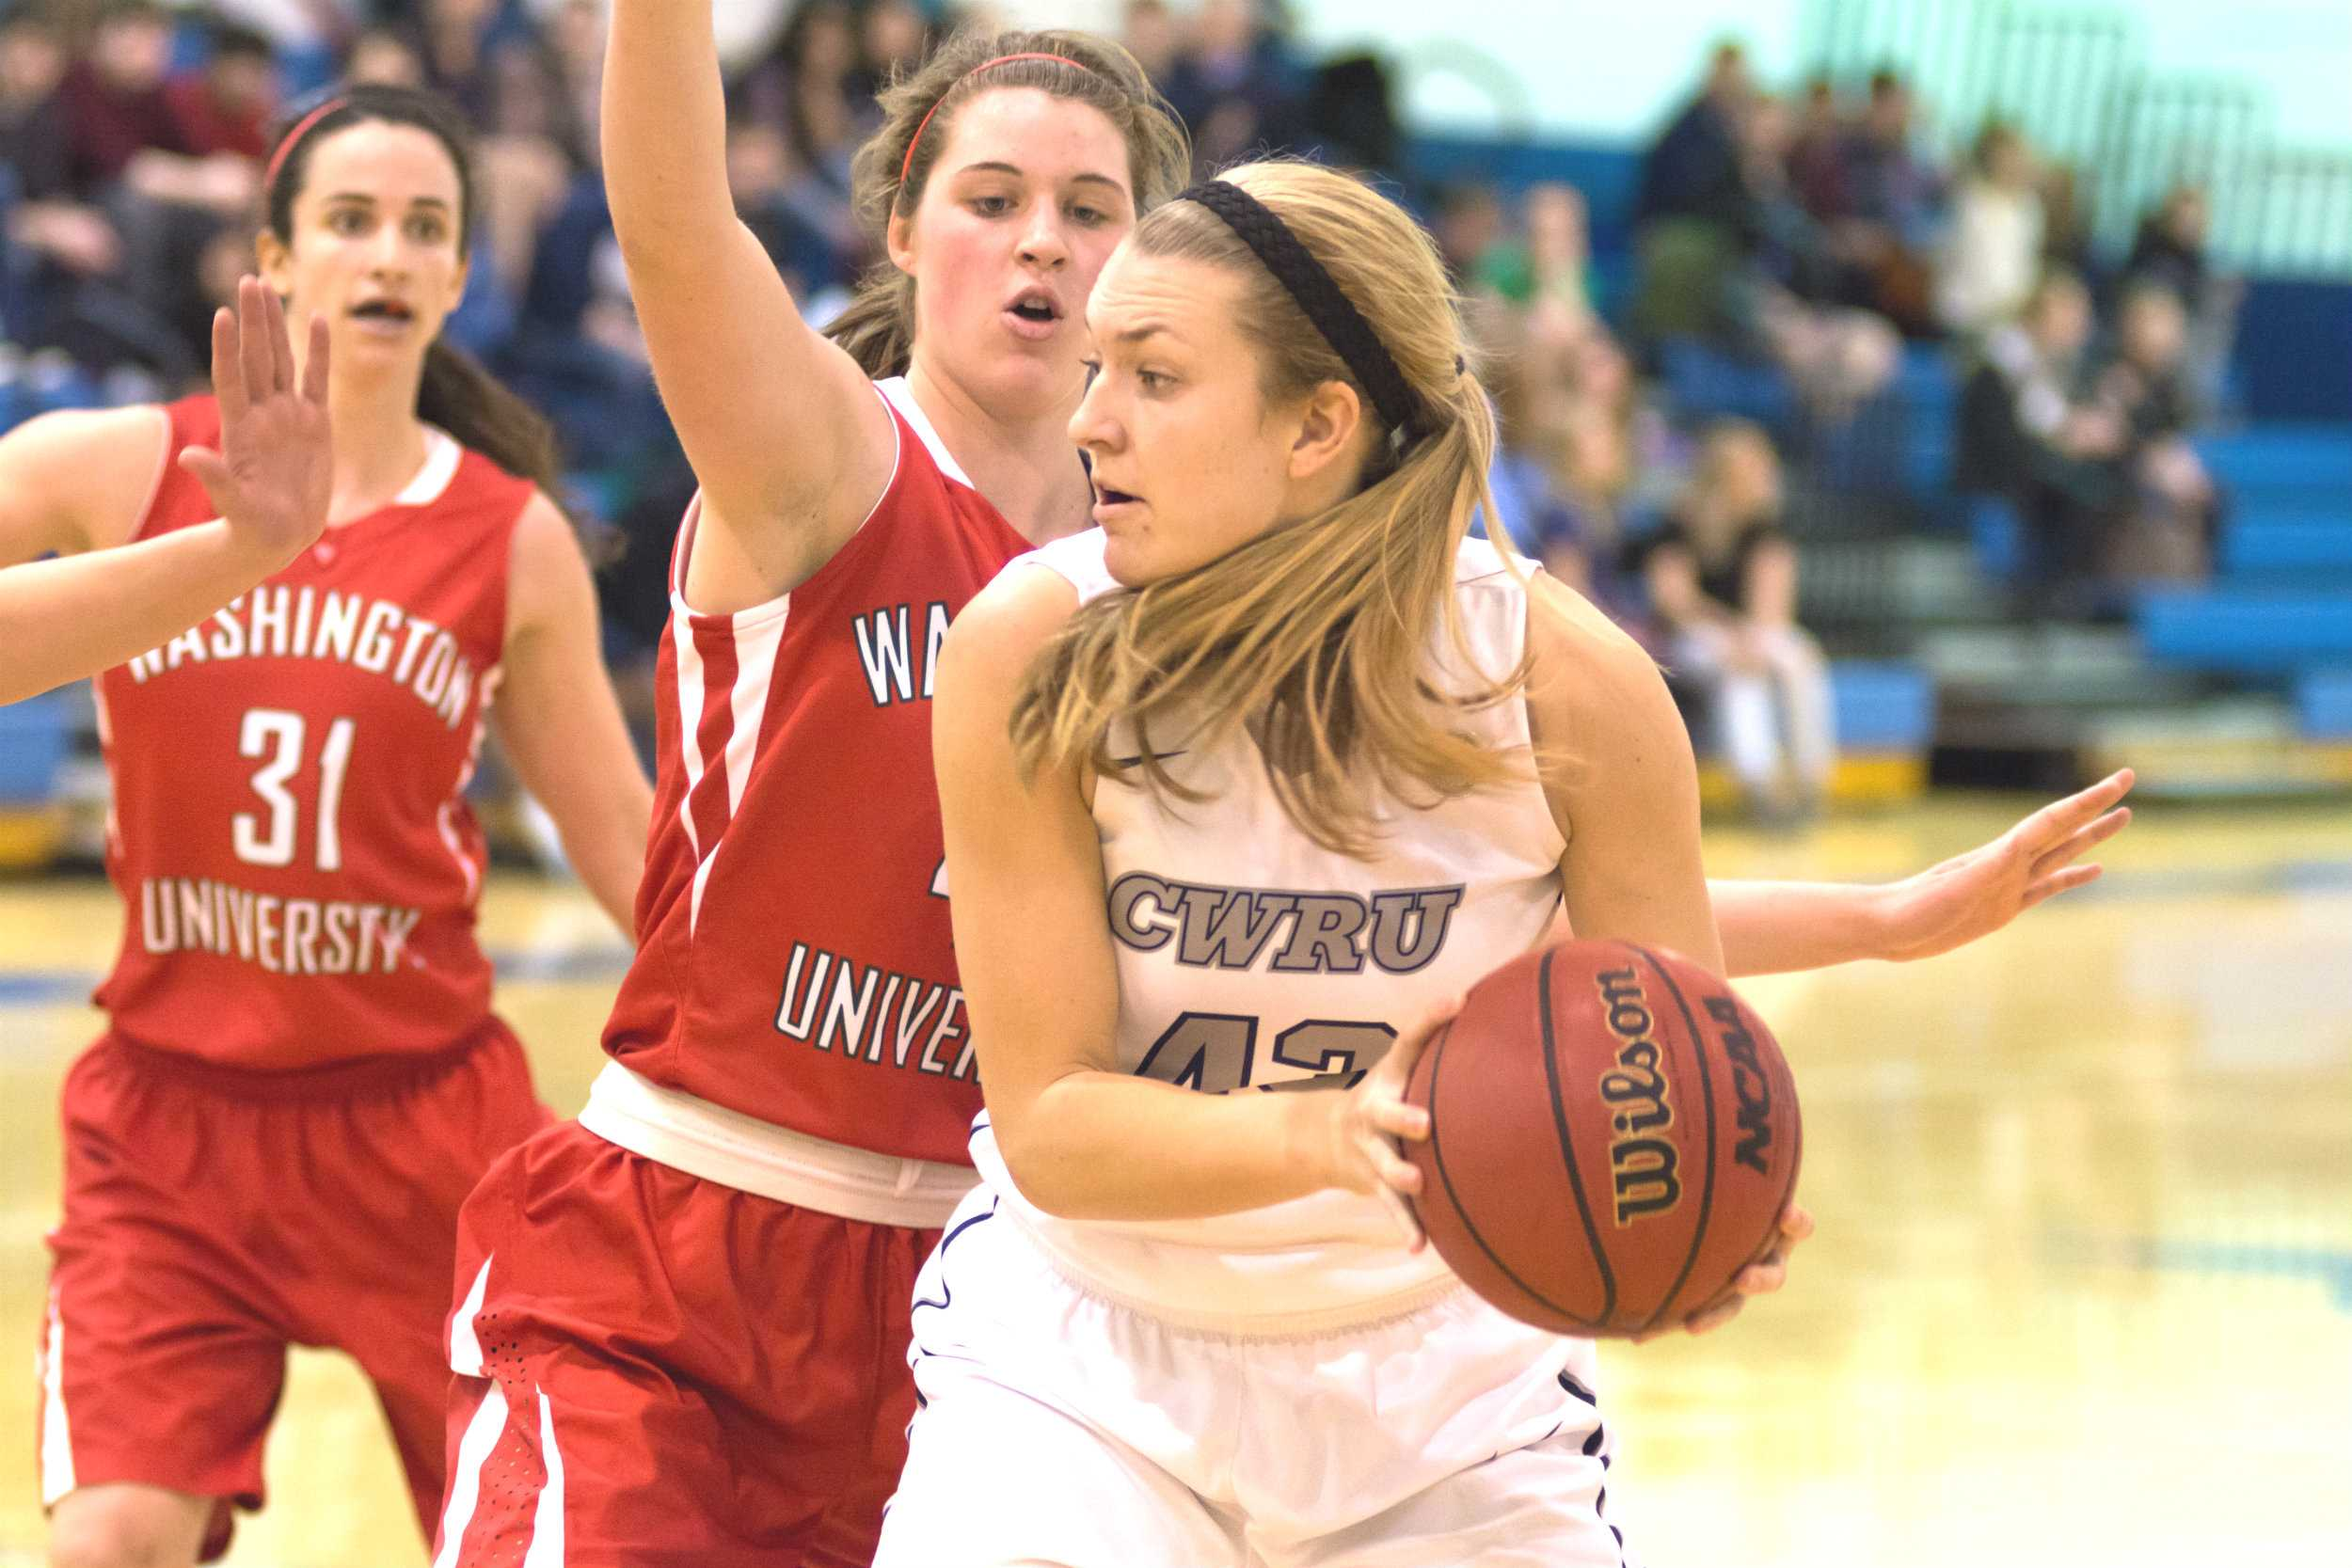 Spartans Laura Mummey looks for a teammate while under pressure earlier this season. Mummey helped boost the Spartans to their first UAA win this past weekend.